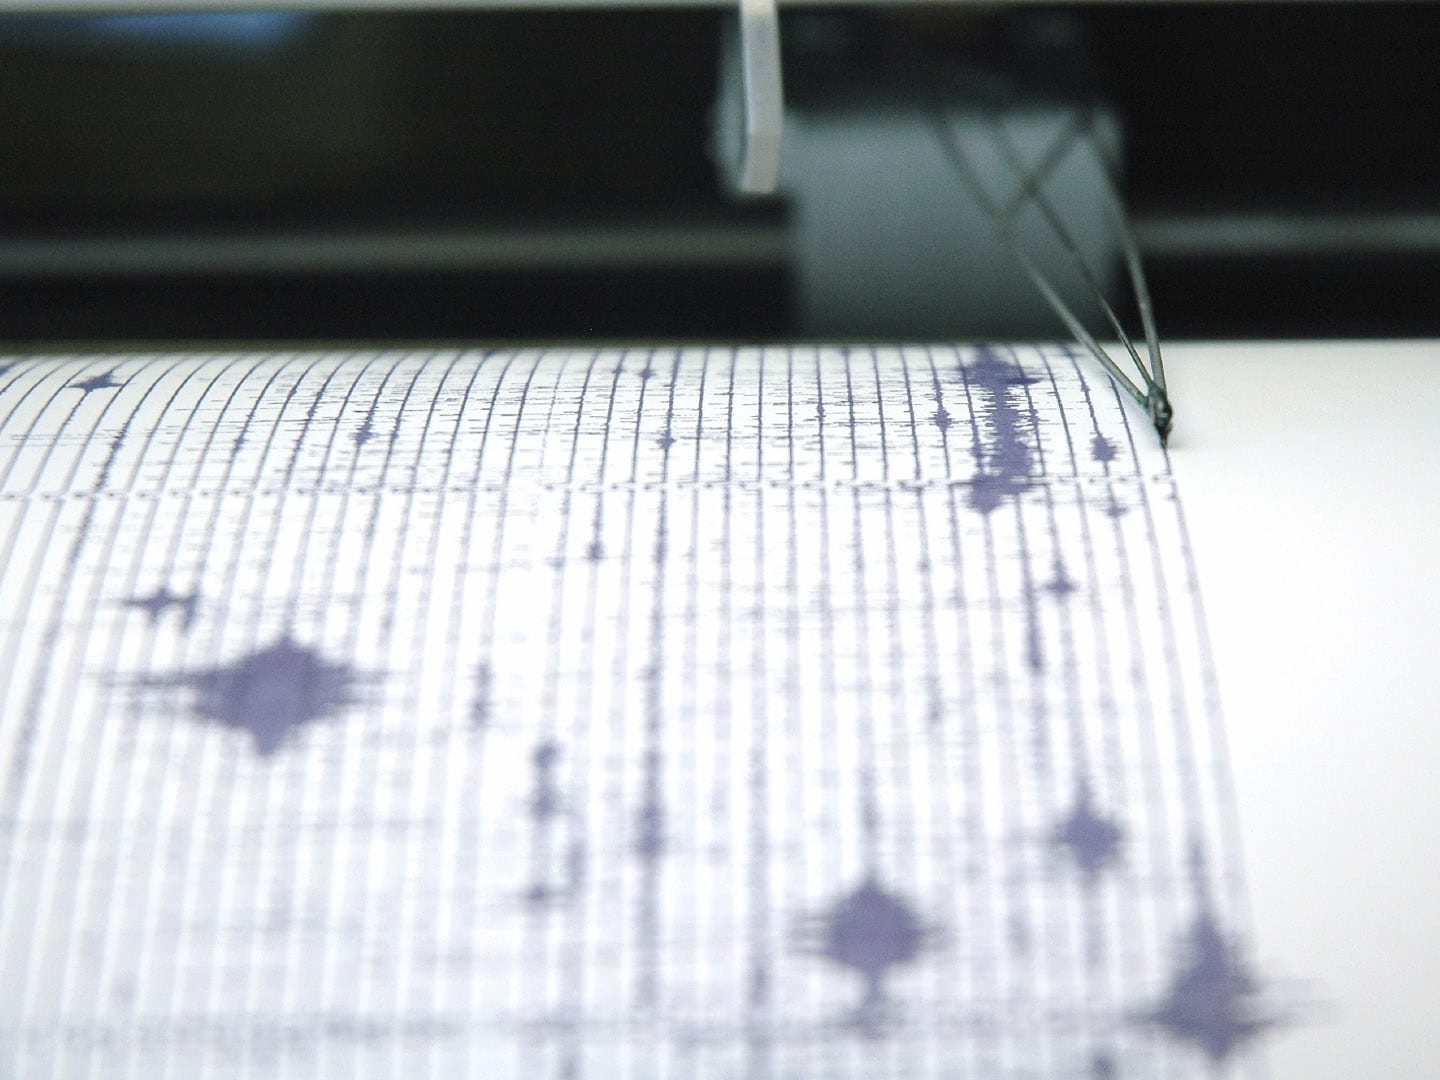 Historical data confirms recent increase in West Texas earthquakes